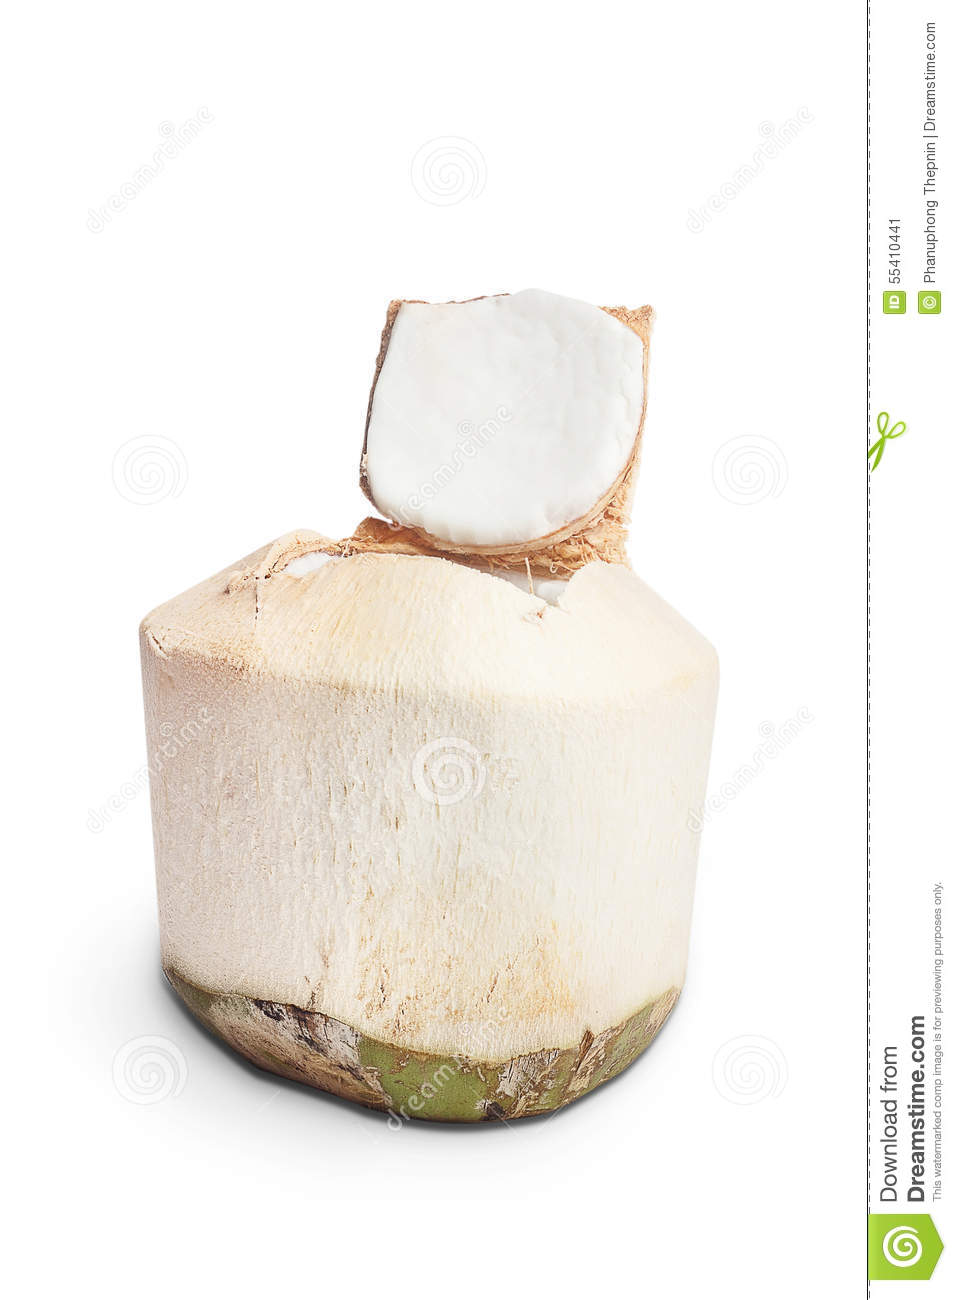 how to choose young coconut